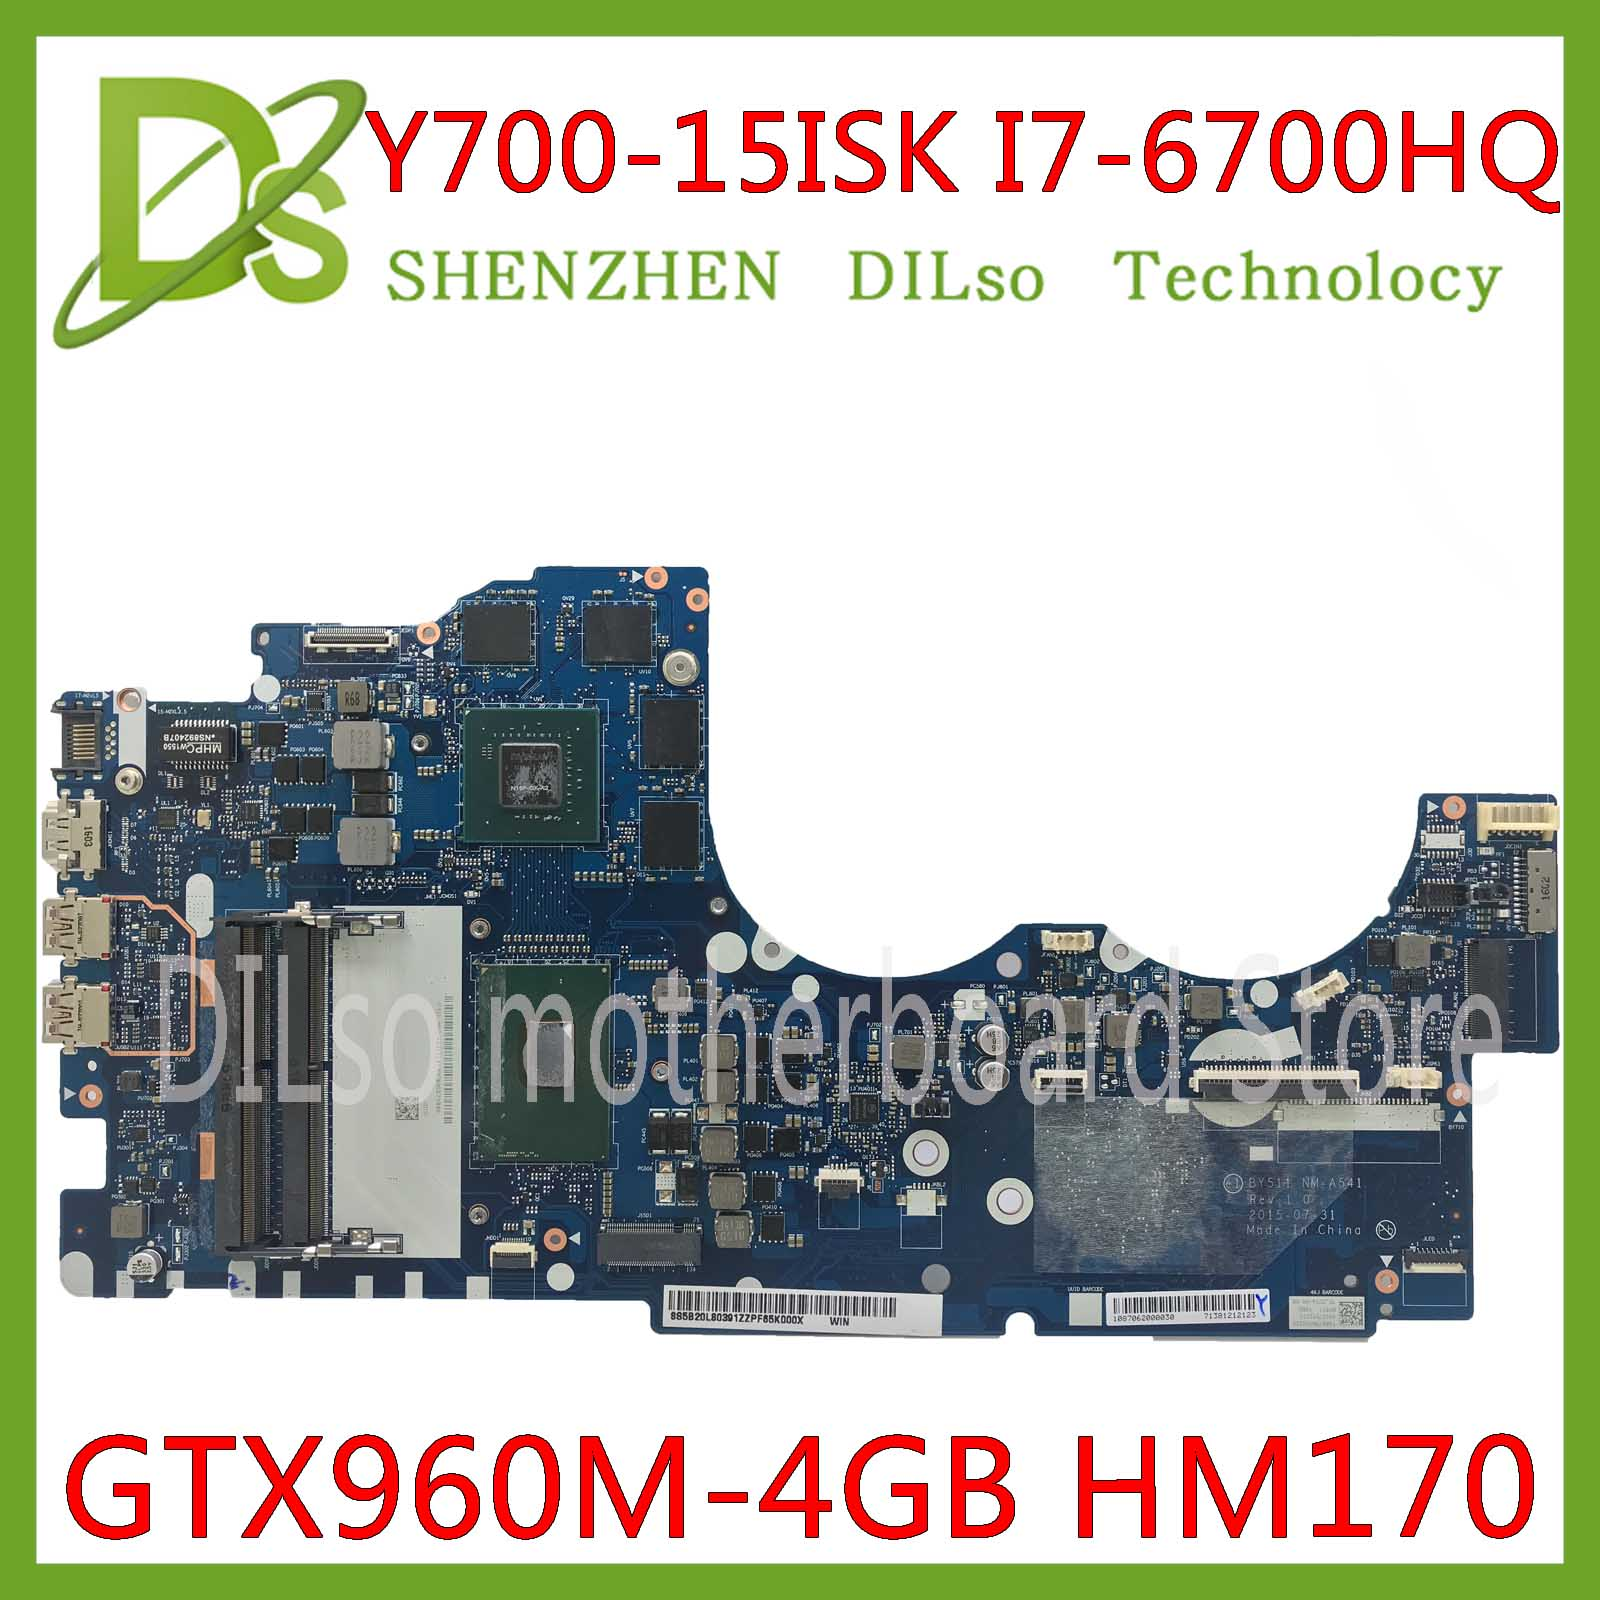 KEFU NM-A541 Motherboard For Lenovo Ideapad Y700-15ISK Y700 Y700-15 BY511 Laptop Motherboard I7-6700 GTX960M 4GB Tested Original